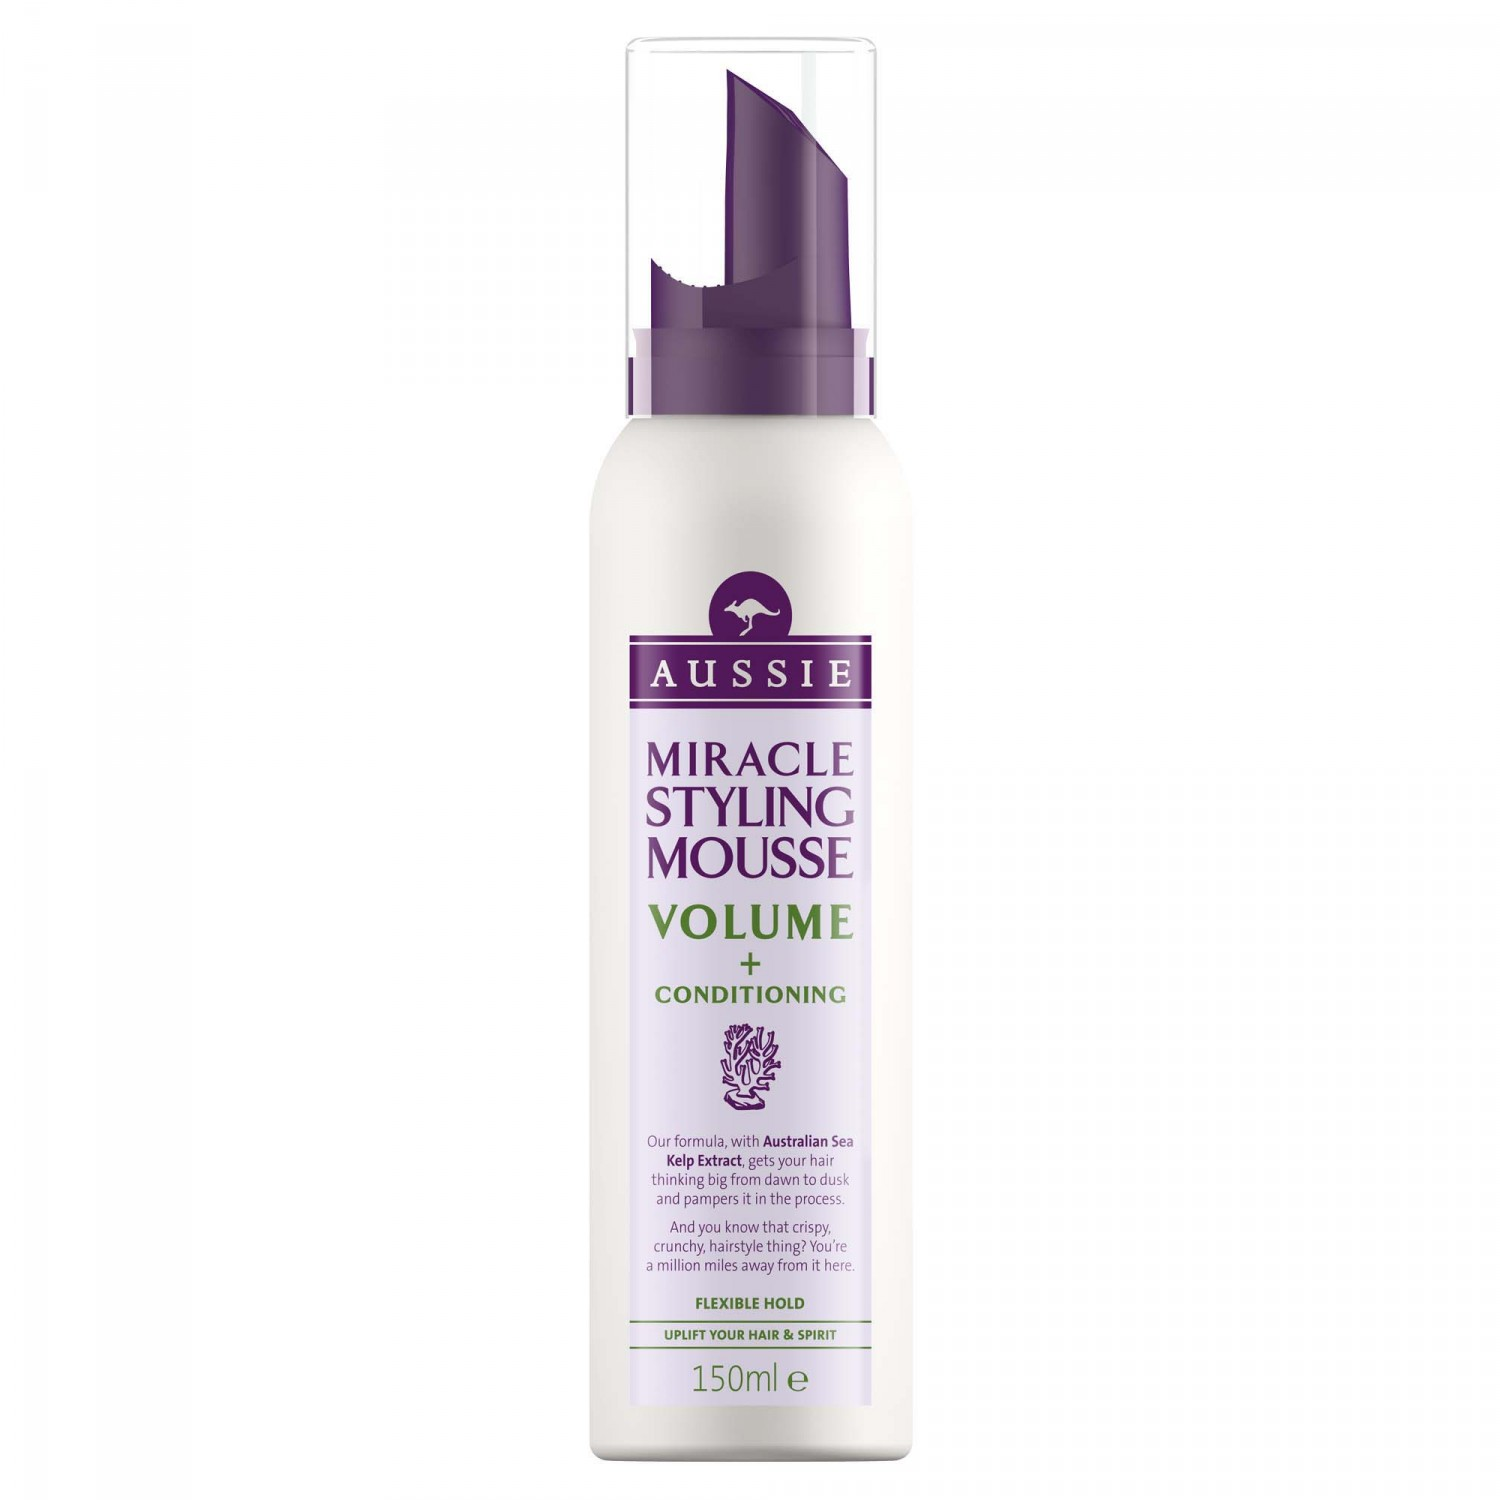 Aussie aussie espuma volume con extracto algas mar australiano de 15cl. en spray